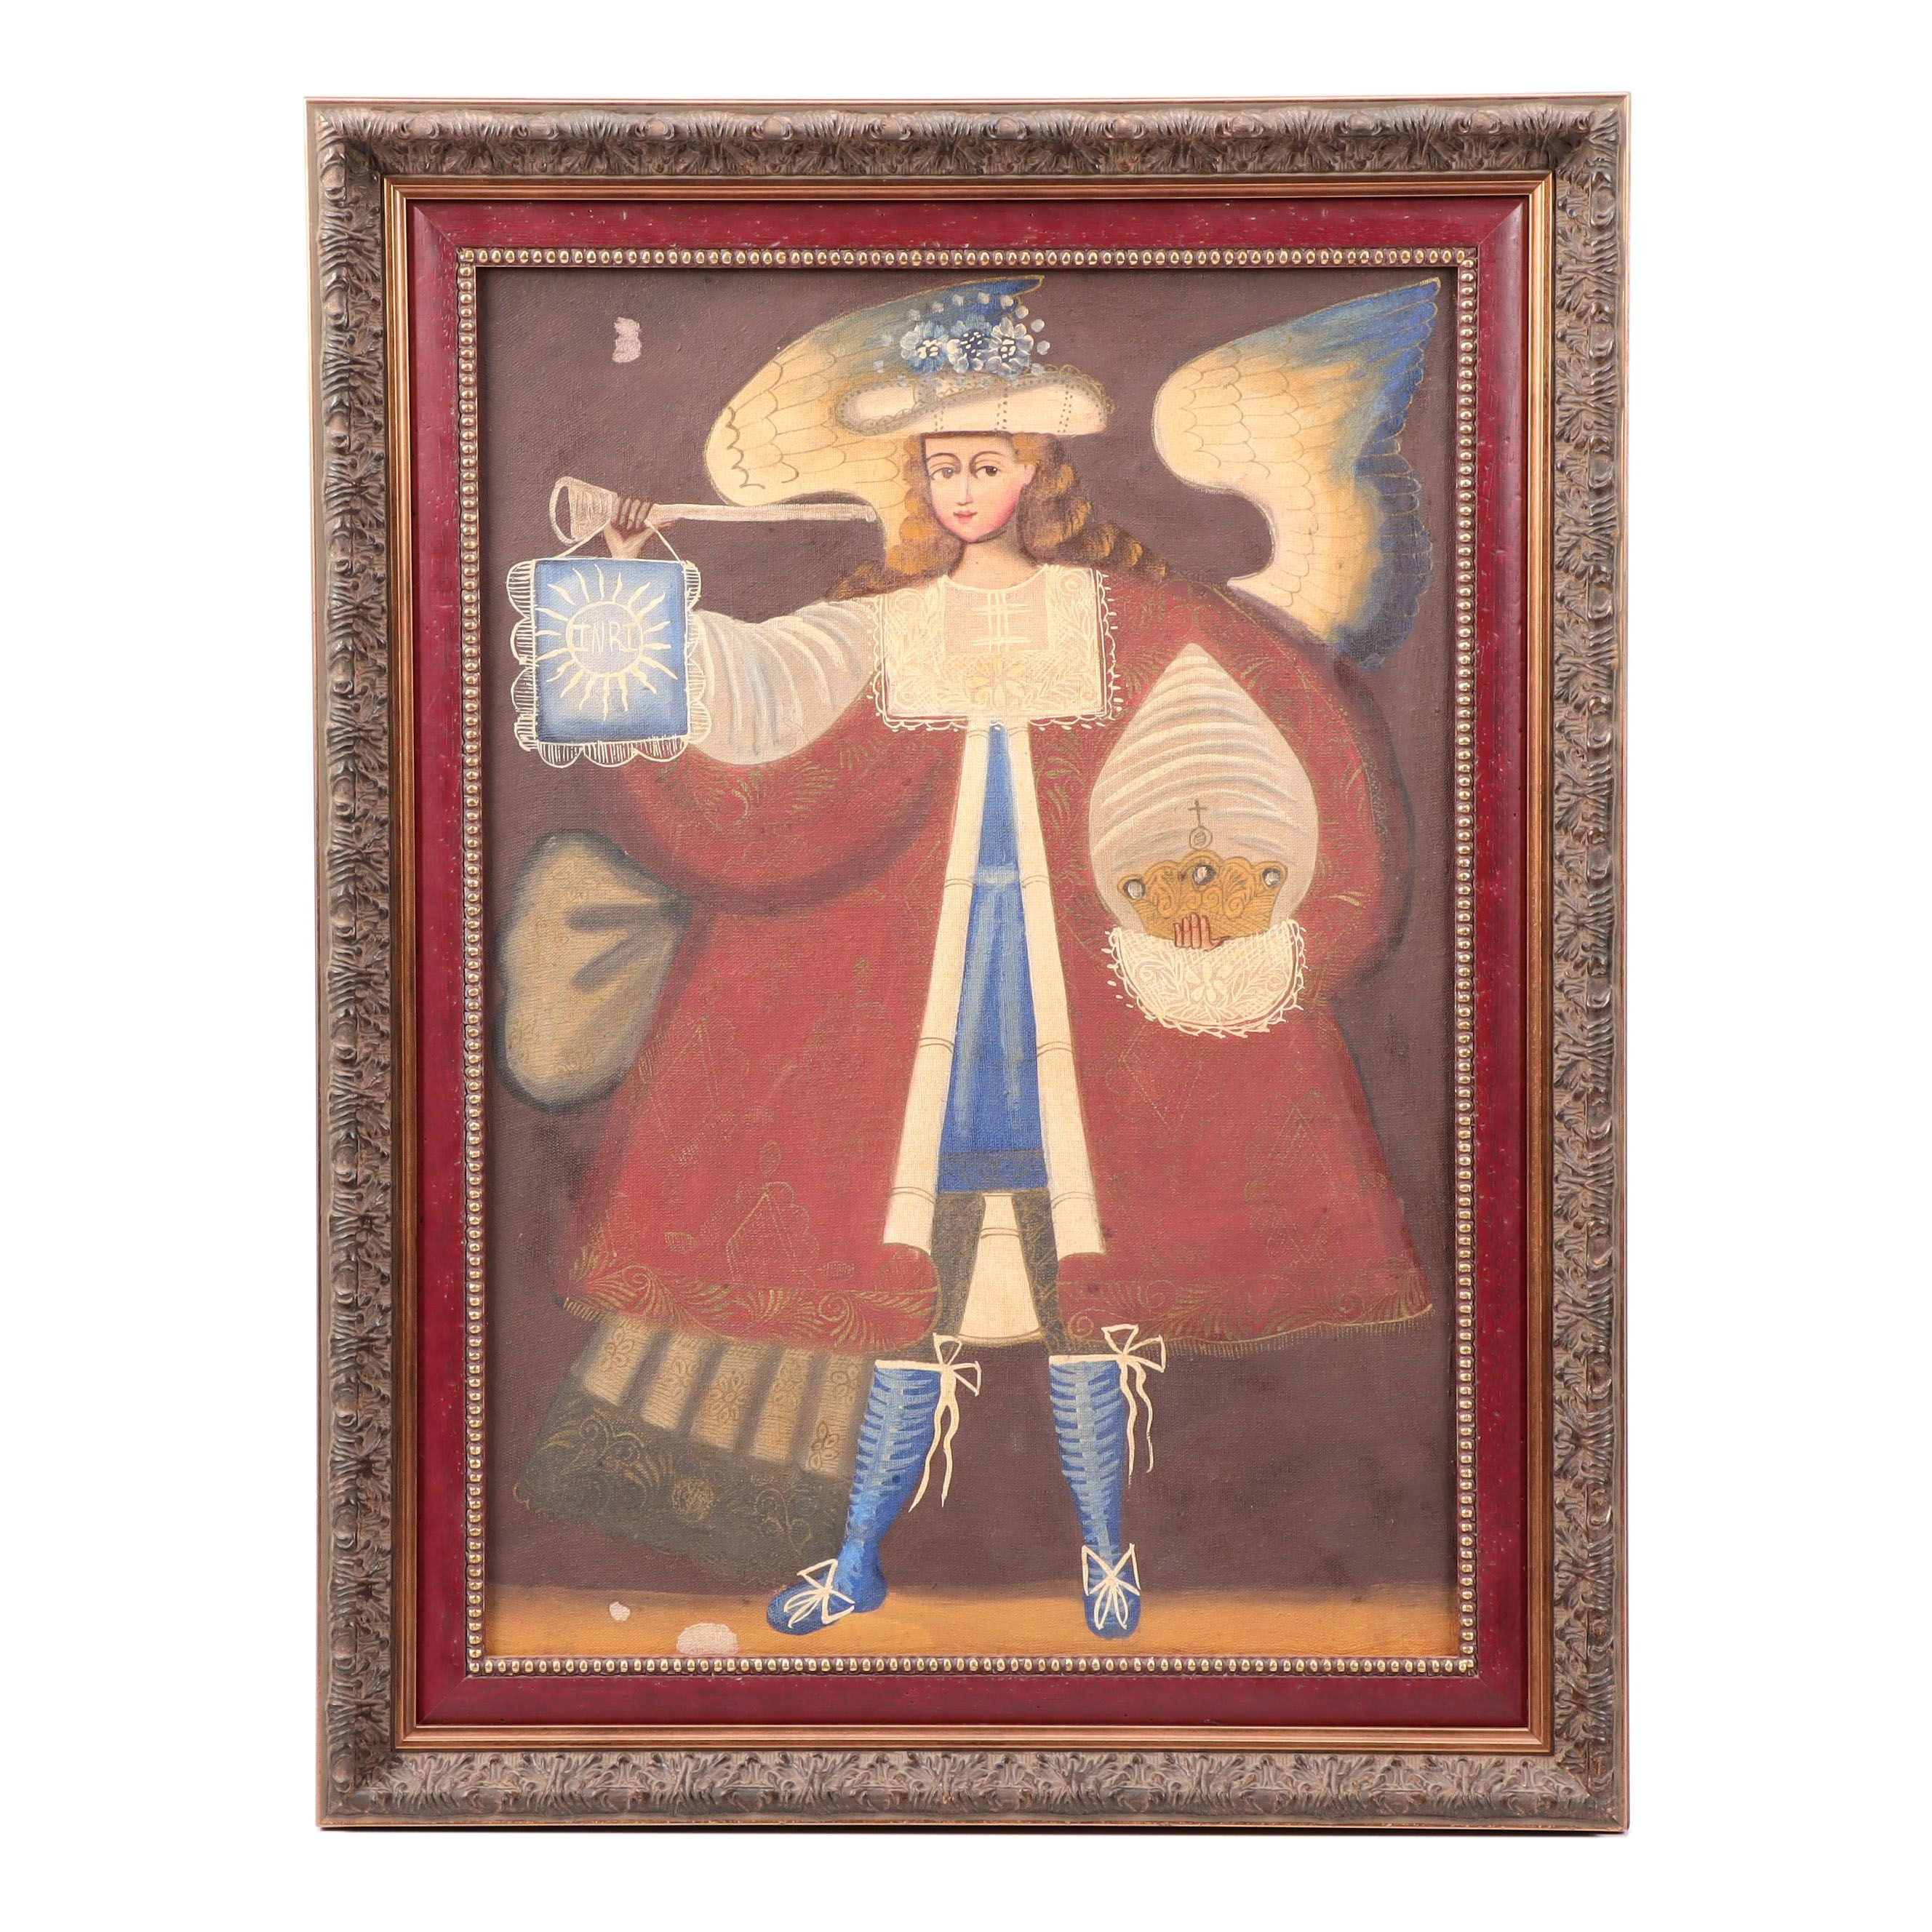 Cuzco School Oil Painting of Archangel with Trumpet